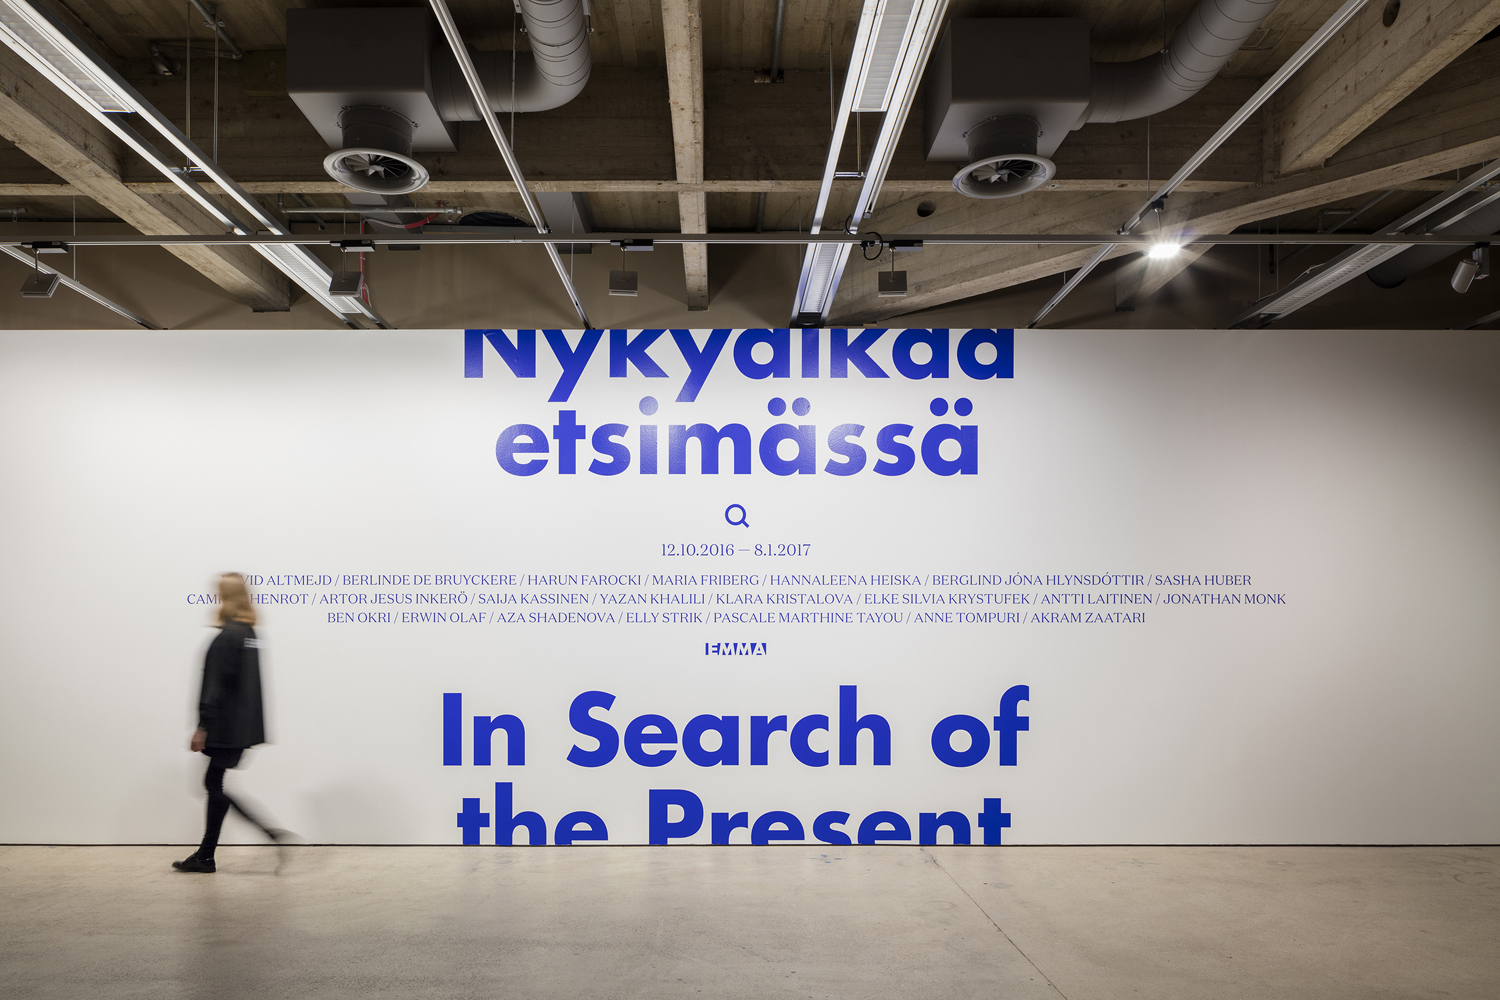 Brand identity and supergraphics designed by Helsinki-based Werklig for EMMA exhibition series In Search Of The Present